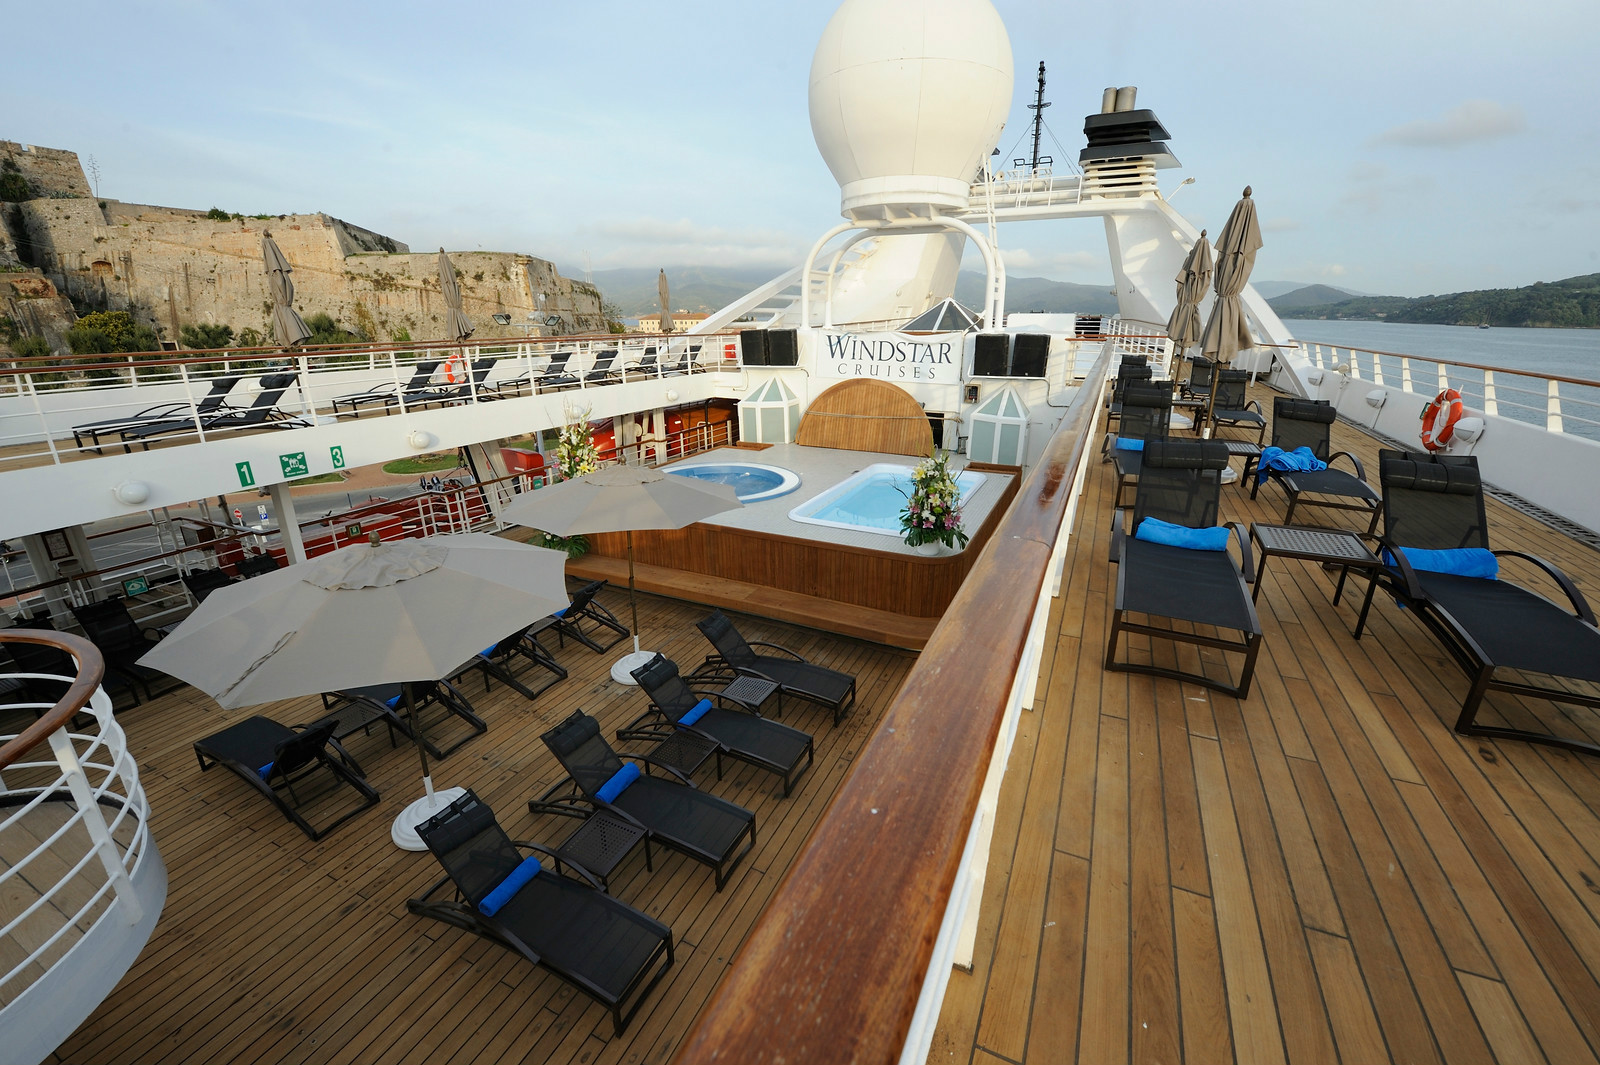 Windstar Deck view